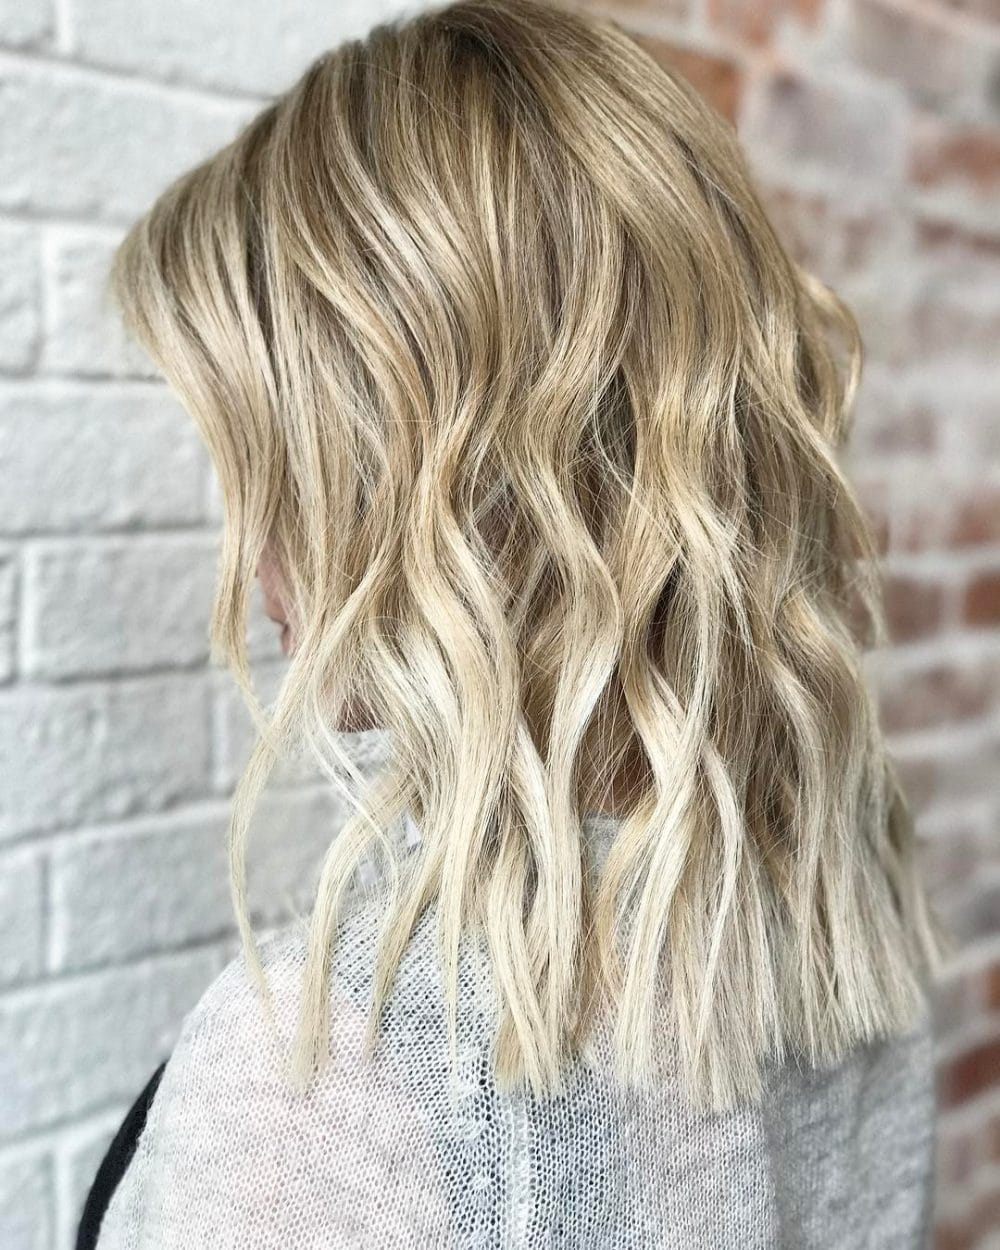 Undone Wave hairstyle